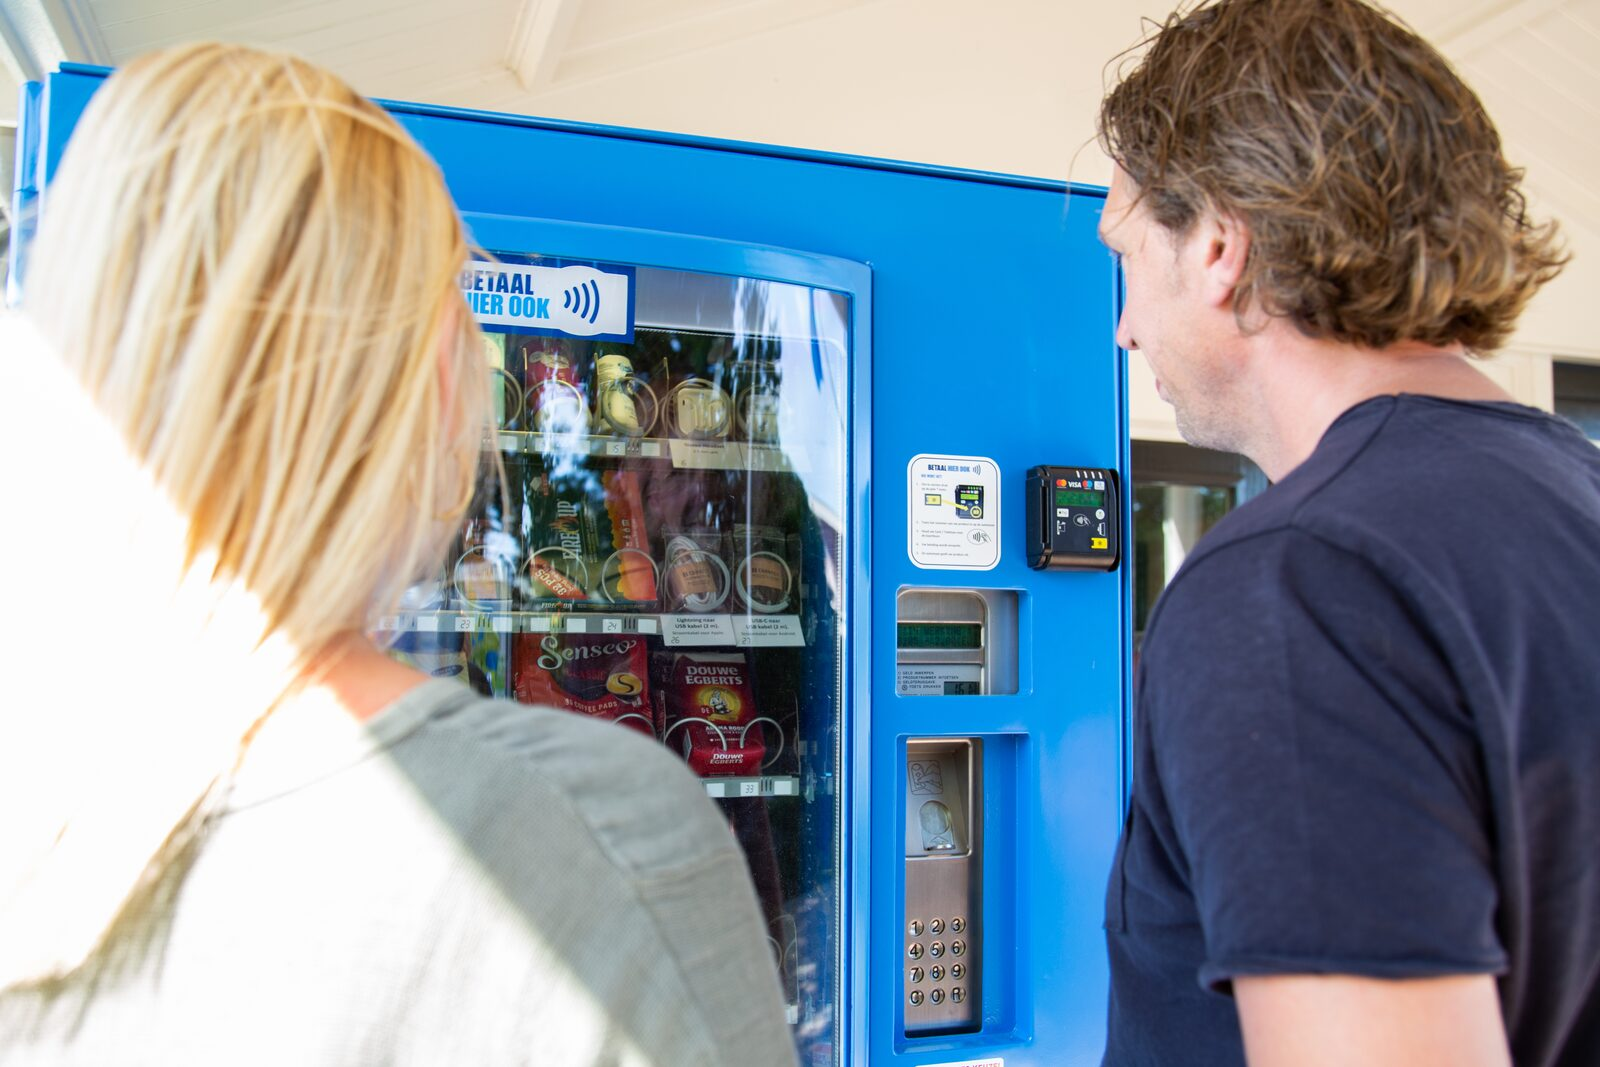 The easily forgotten important groceries are now available from a 24-shop vending machine